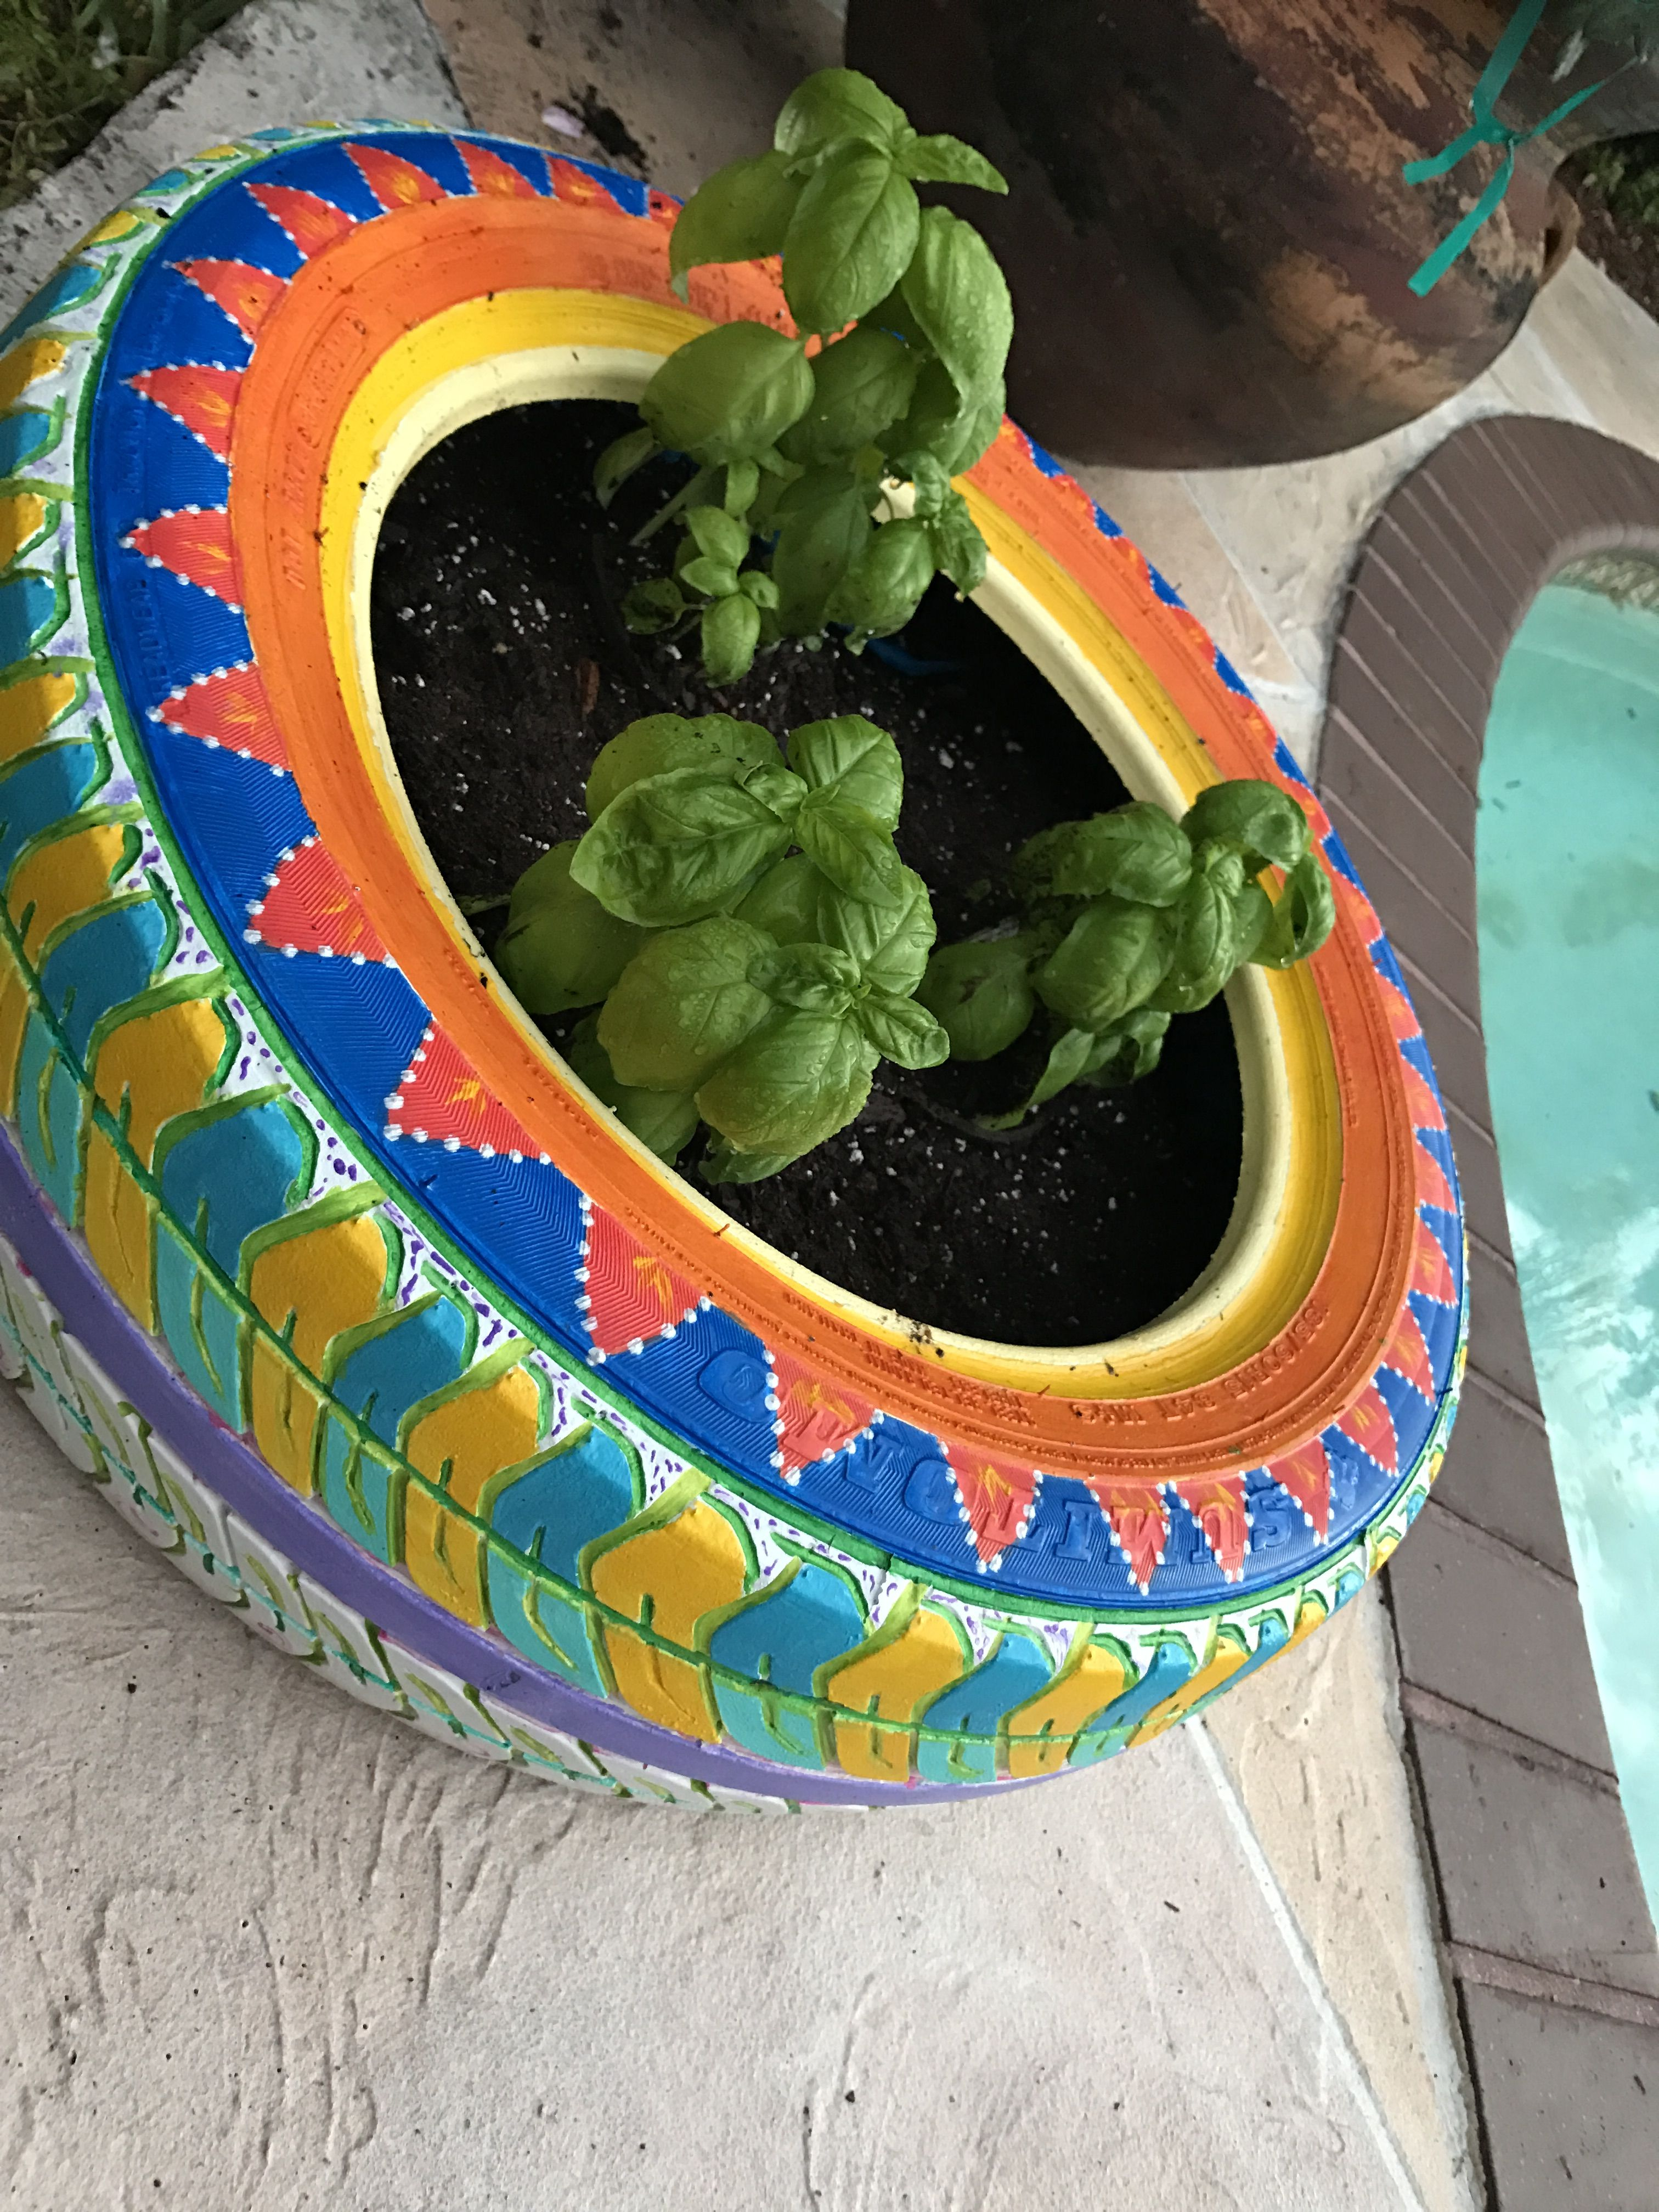 Repurposed Car Tire Painted By Hand And Potted Basil